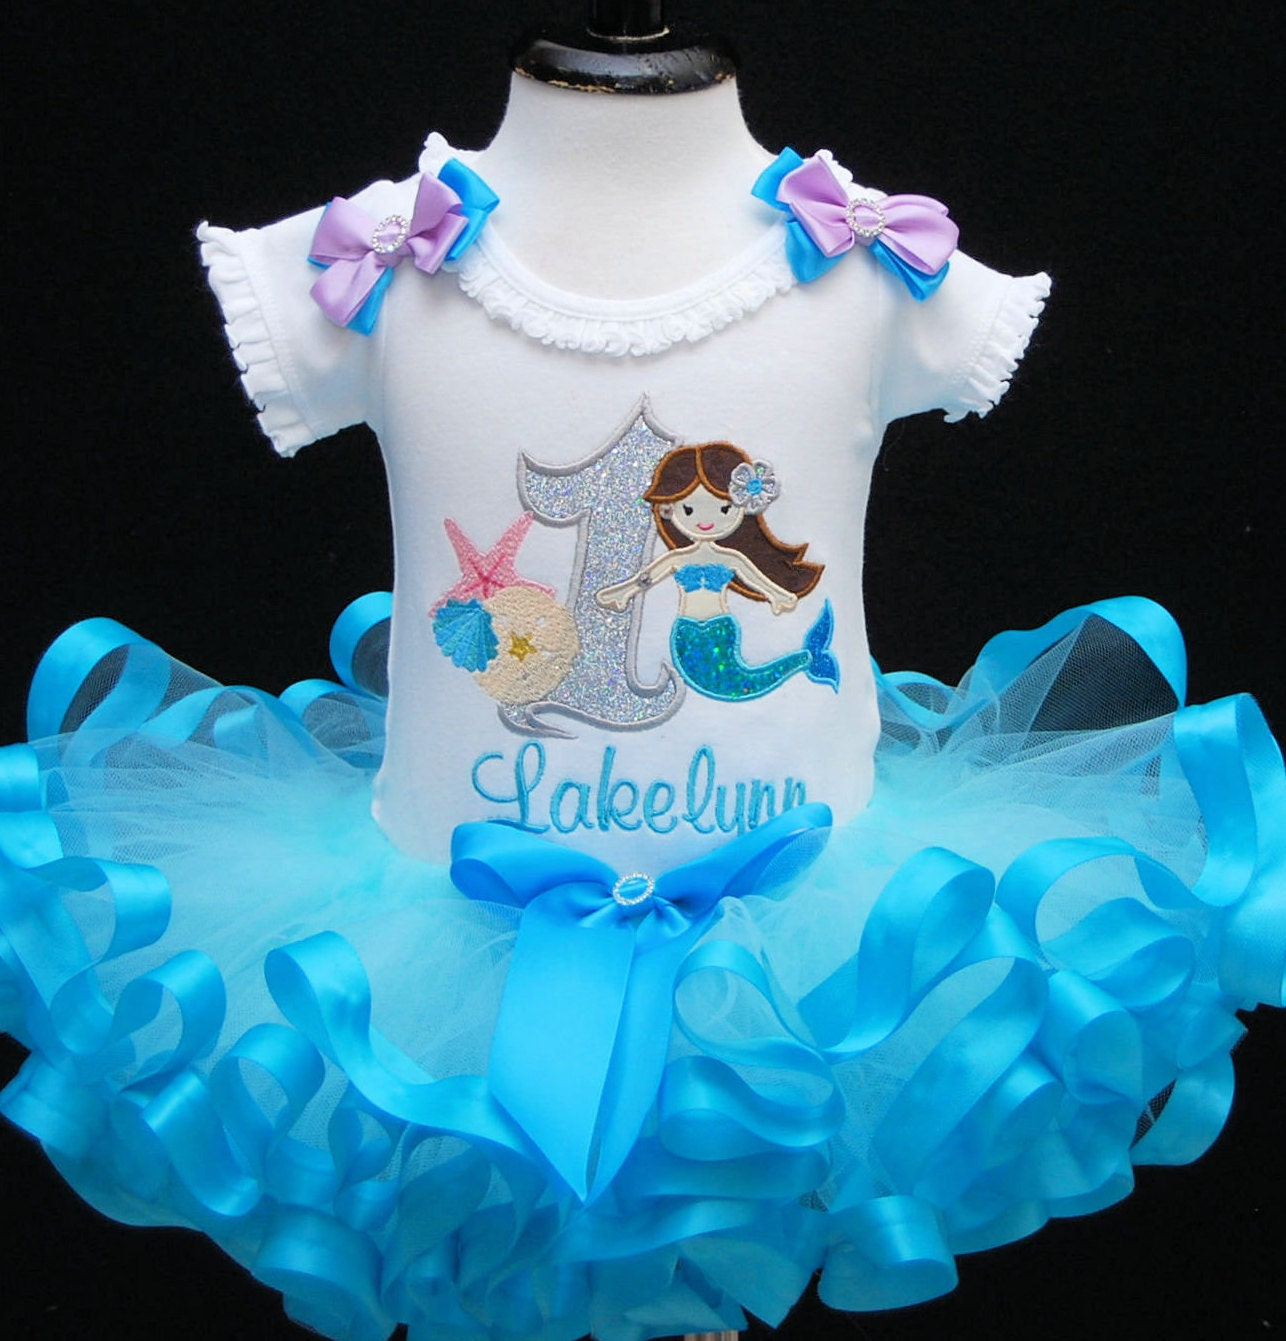 mermaid 1st birthday outfit ,1st birthday girl outfit personalized mermaid shirt first birthday outfit mermaid cake smash outfit baby girl